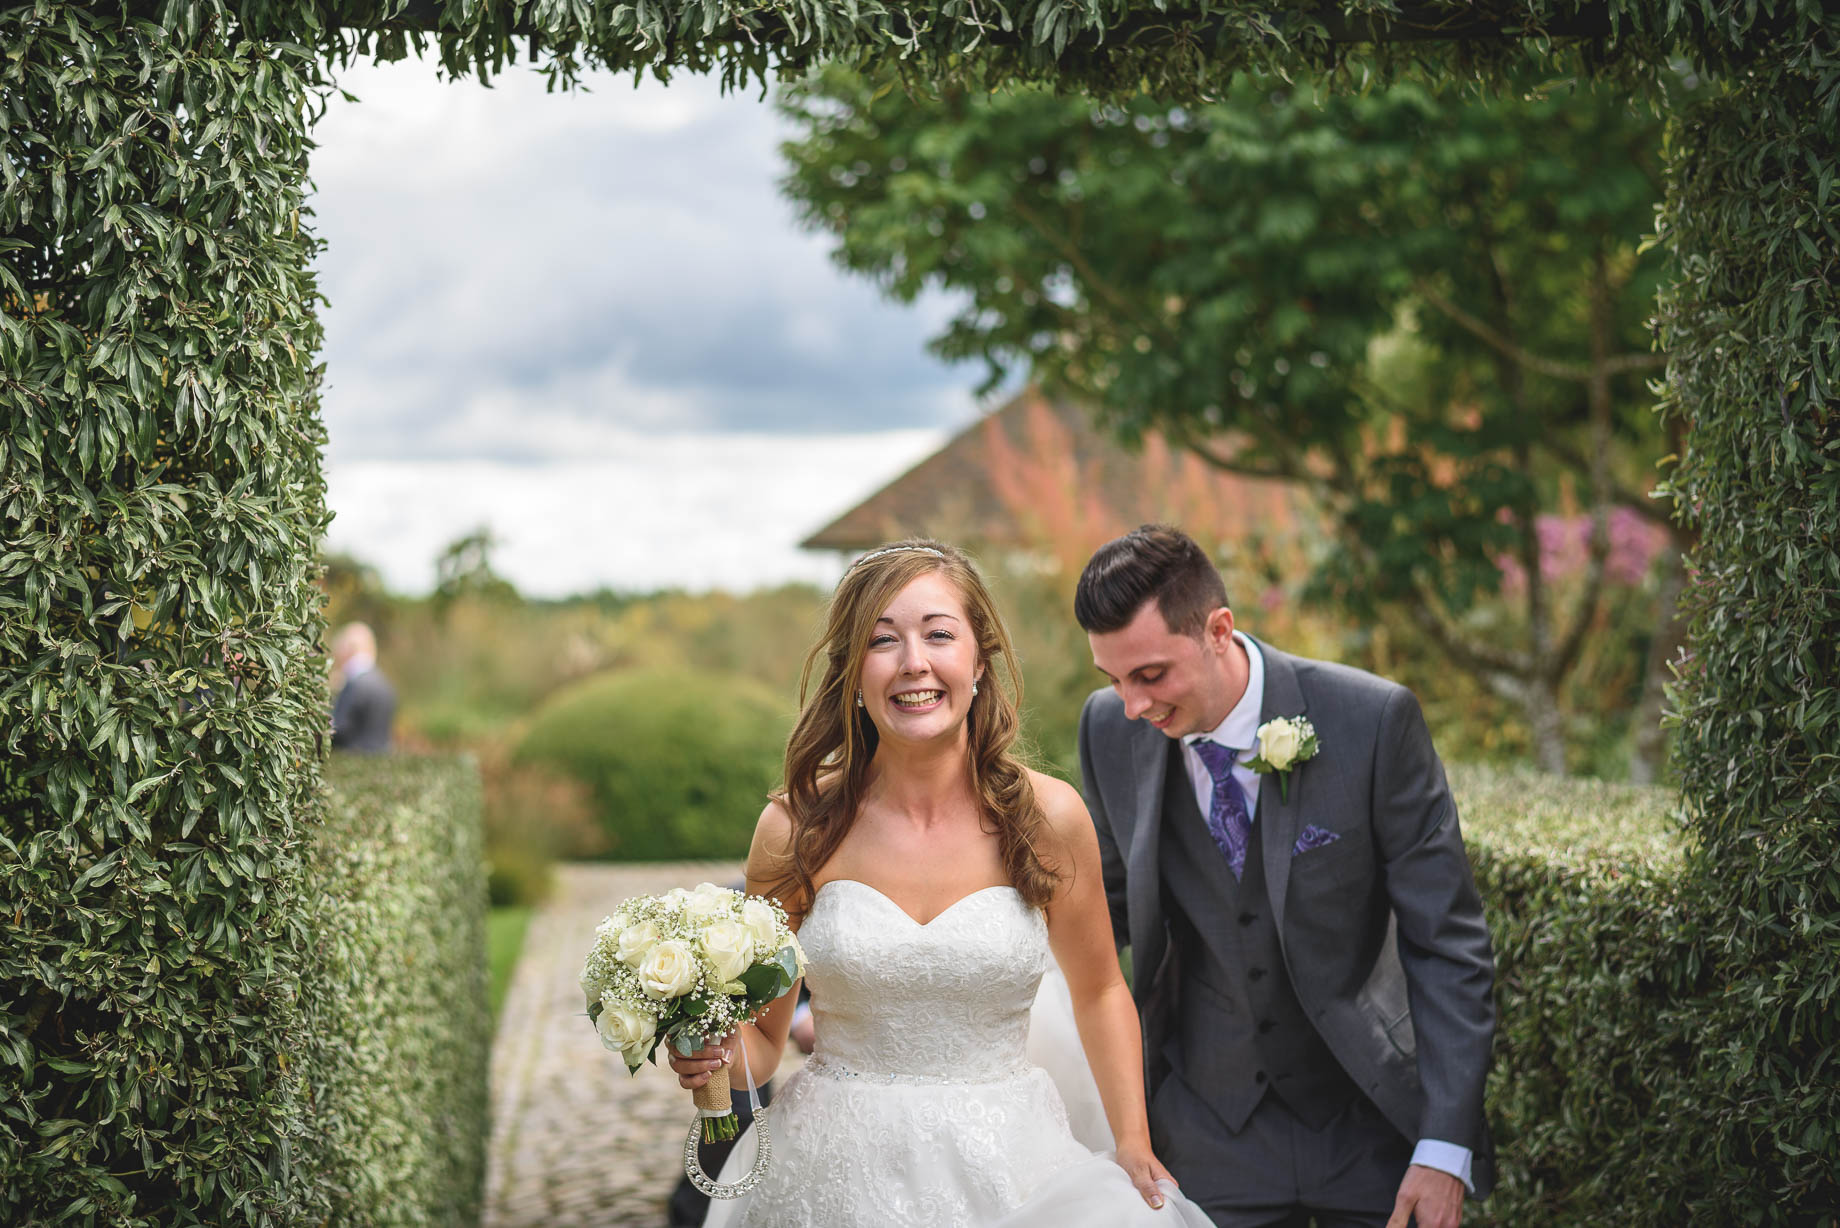 Bury Court Barn wedding photography - Guy Collier - Kirsty and Lewis (94 of 150)